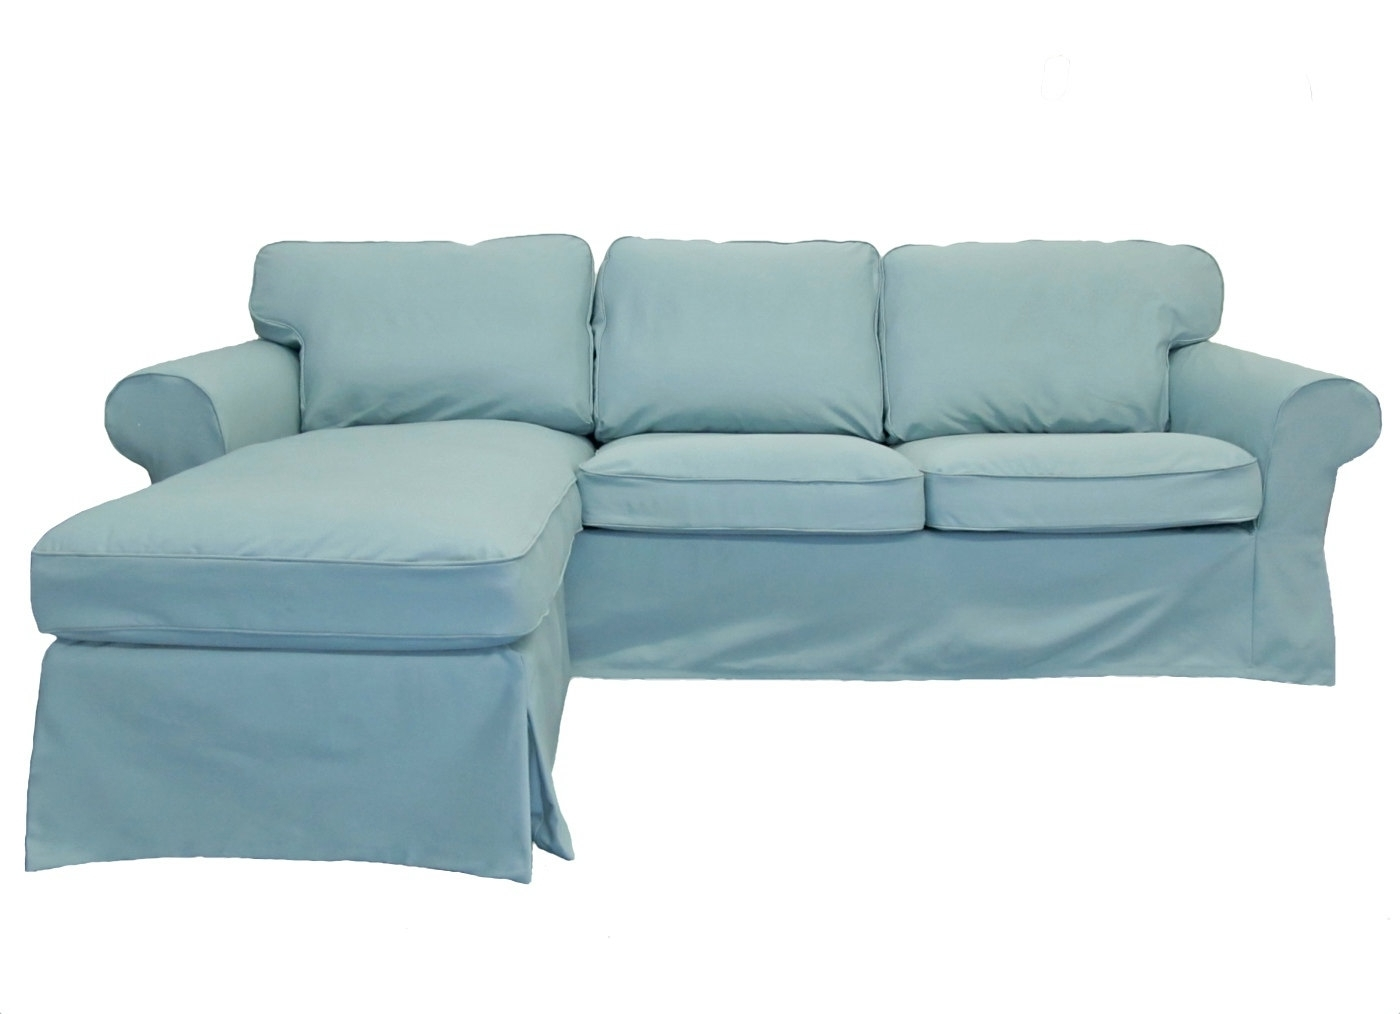 Chaise Sofa Covers With 2018 Chaise Sofa Cover 20 With Chaise Sofa Cover (View 6 of 15)